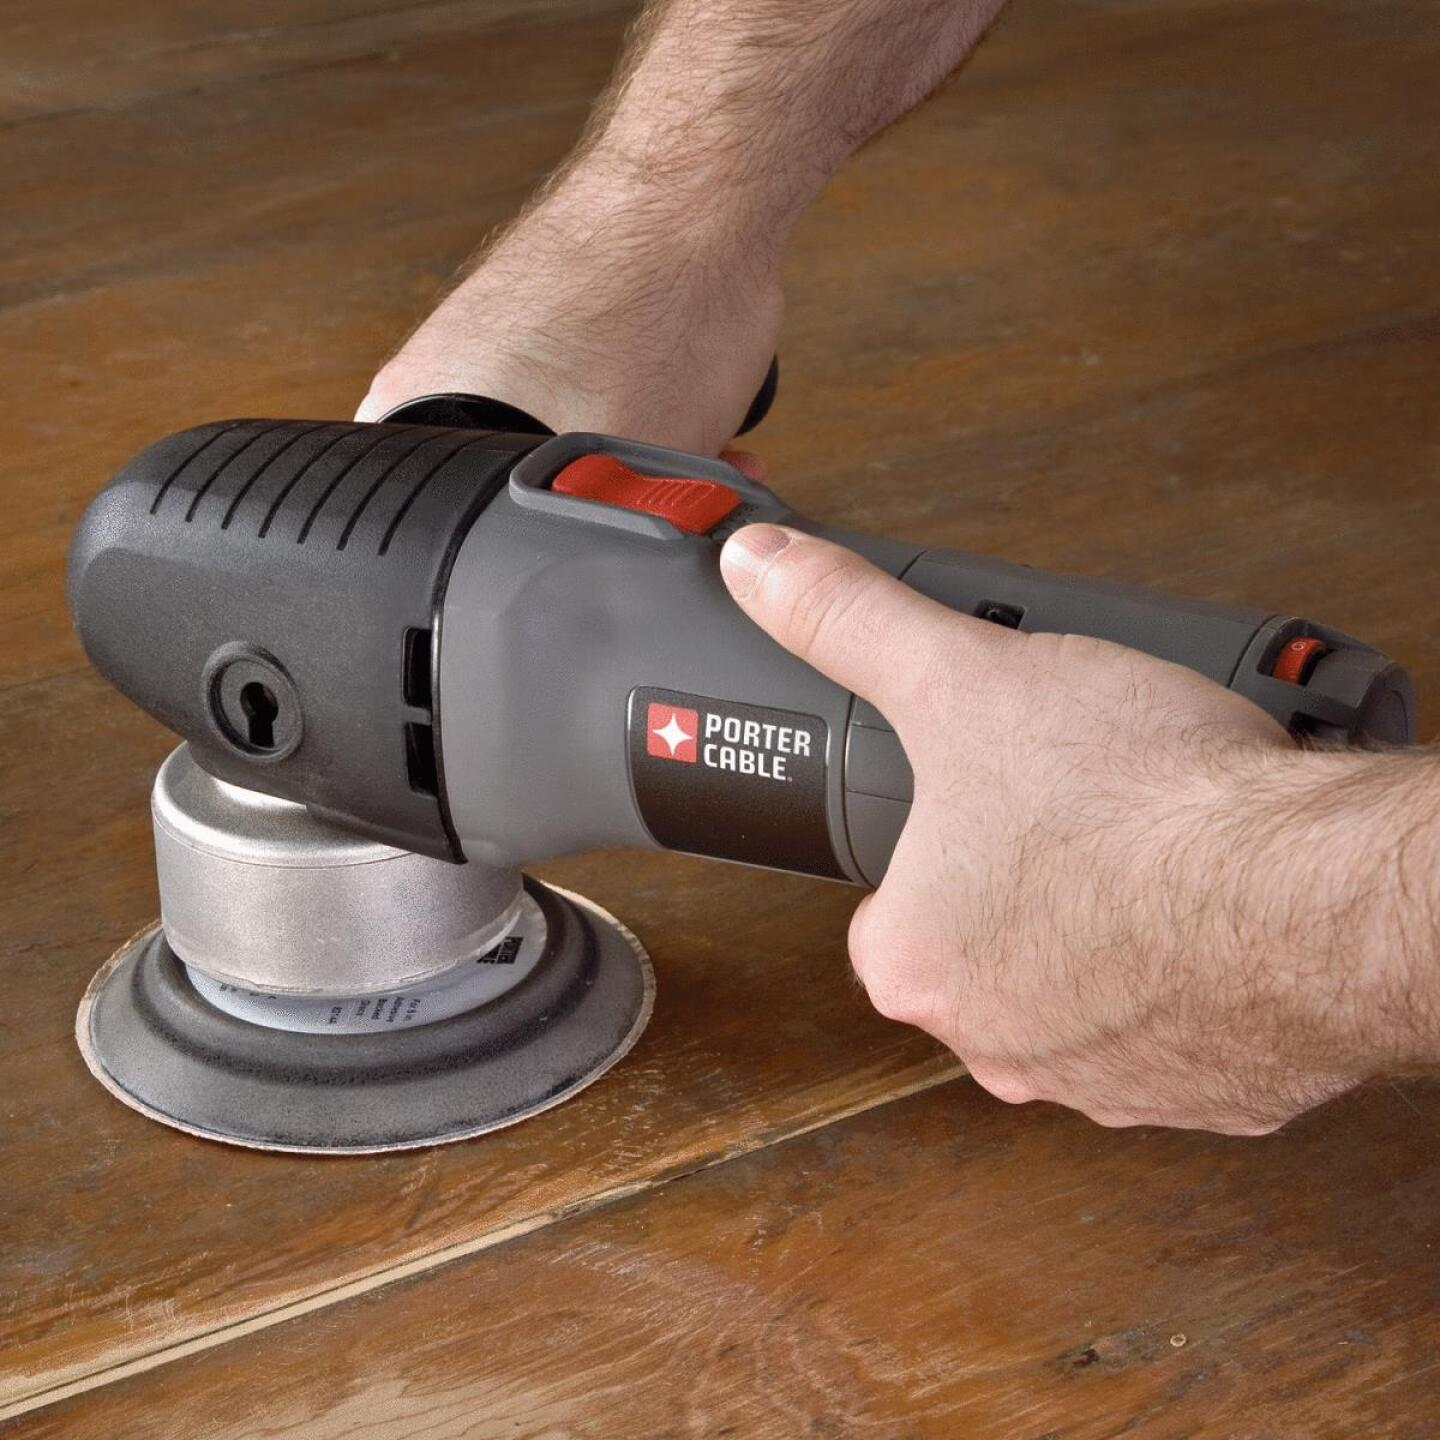 Porter Cable 5 In. 4.5A Finish Sander Image 2